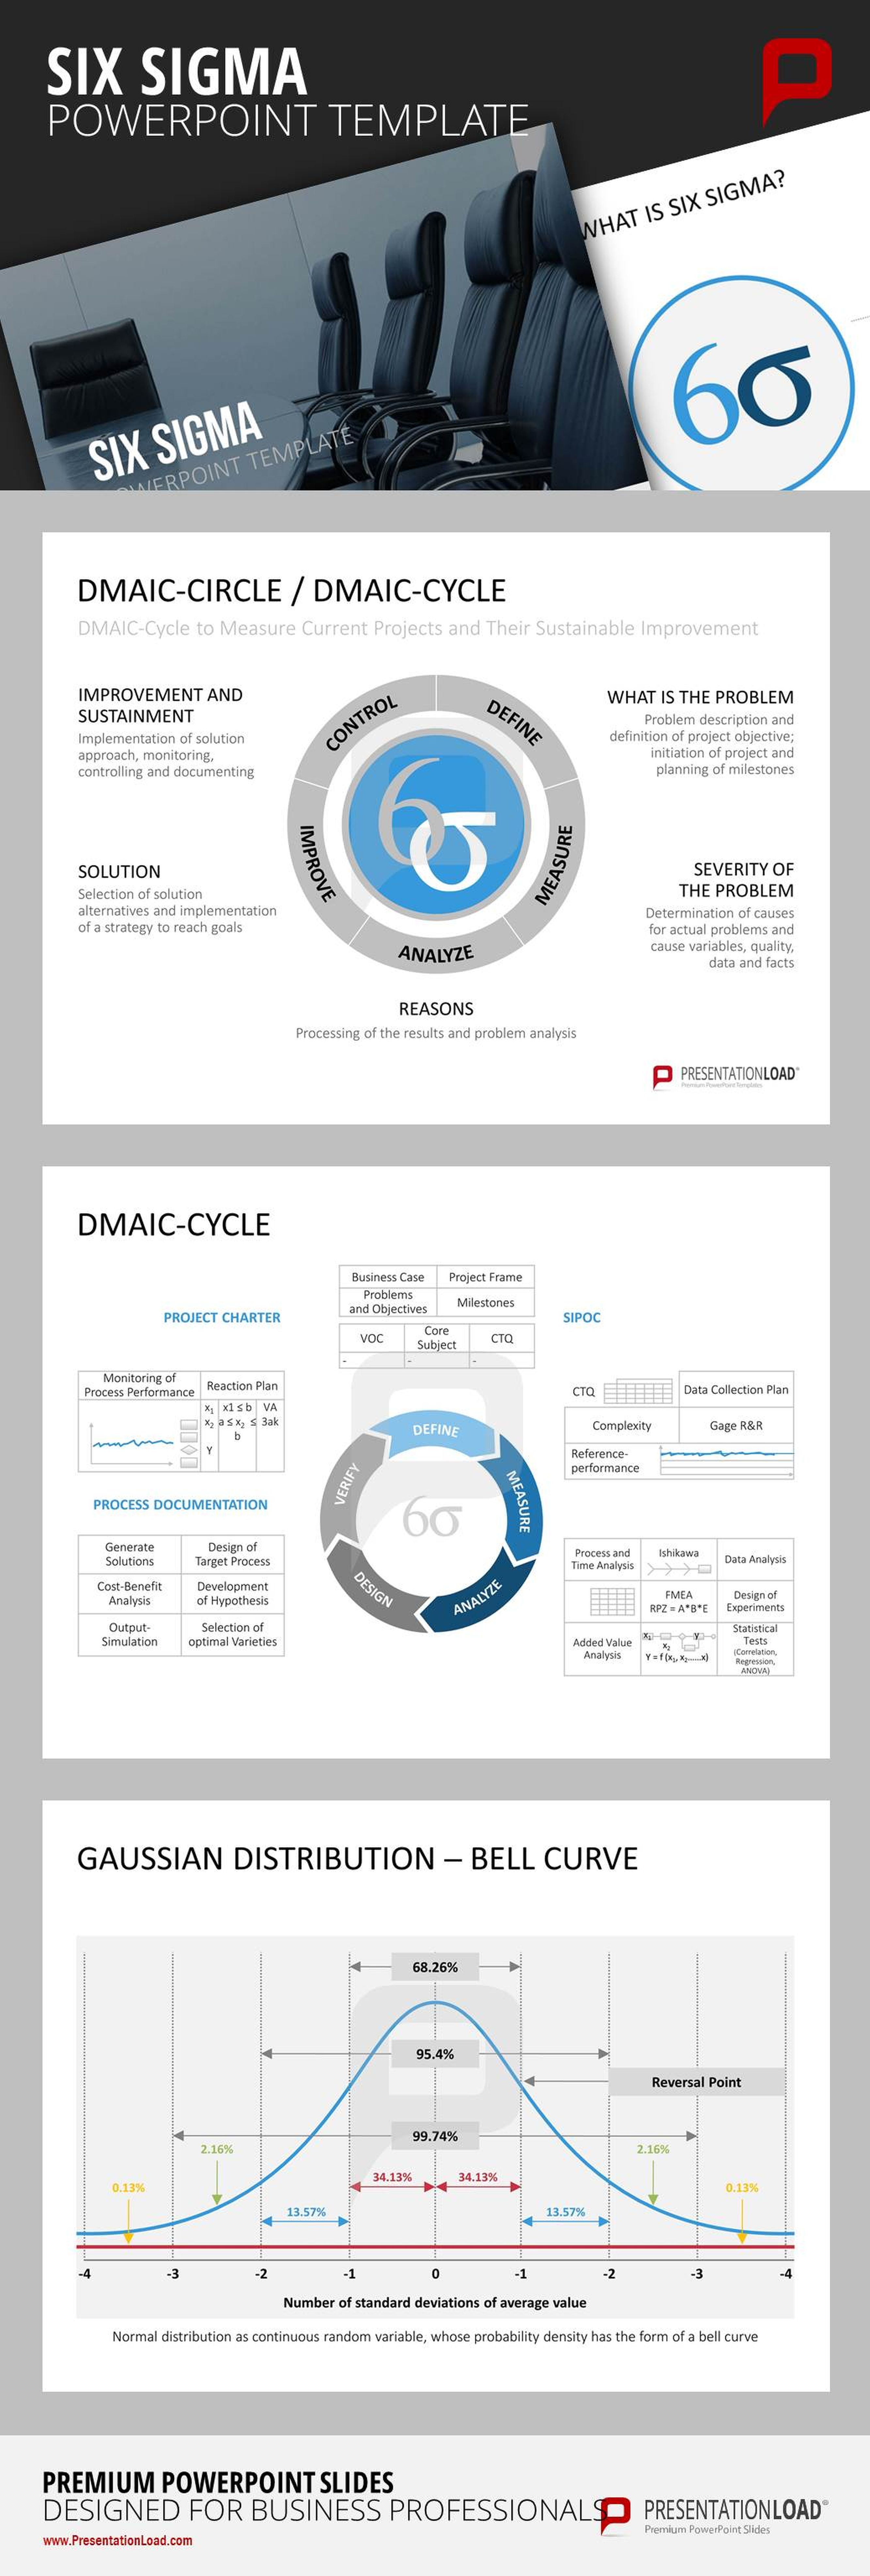 New PowerPoint-Templates: Define, measure, analyze, improve and control: DMAIC and other analysis tools of the Six Sigma concept for a simple implementation of quality management principles @ http://www.presentationload.com/six-sigma-powerpoint-template.html